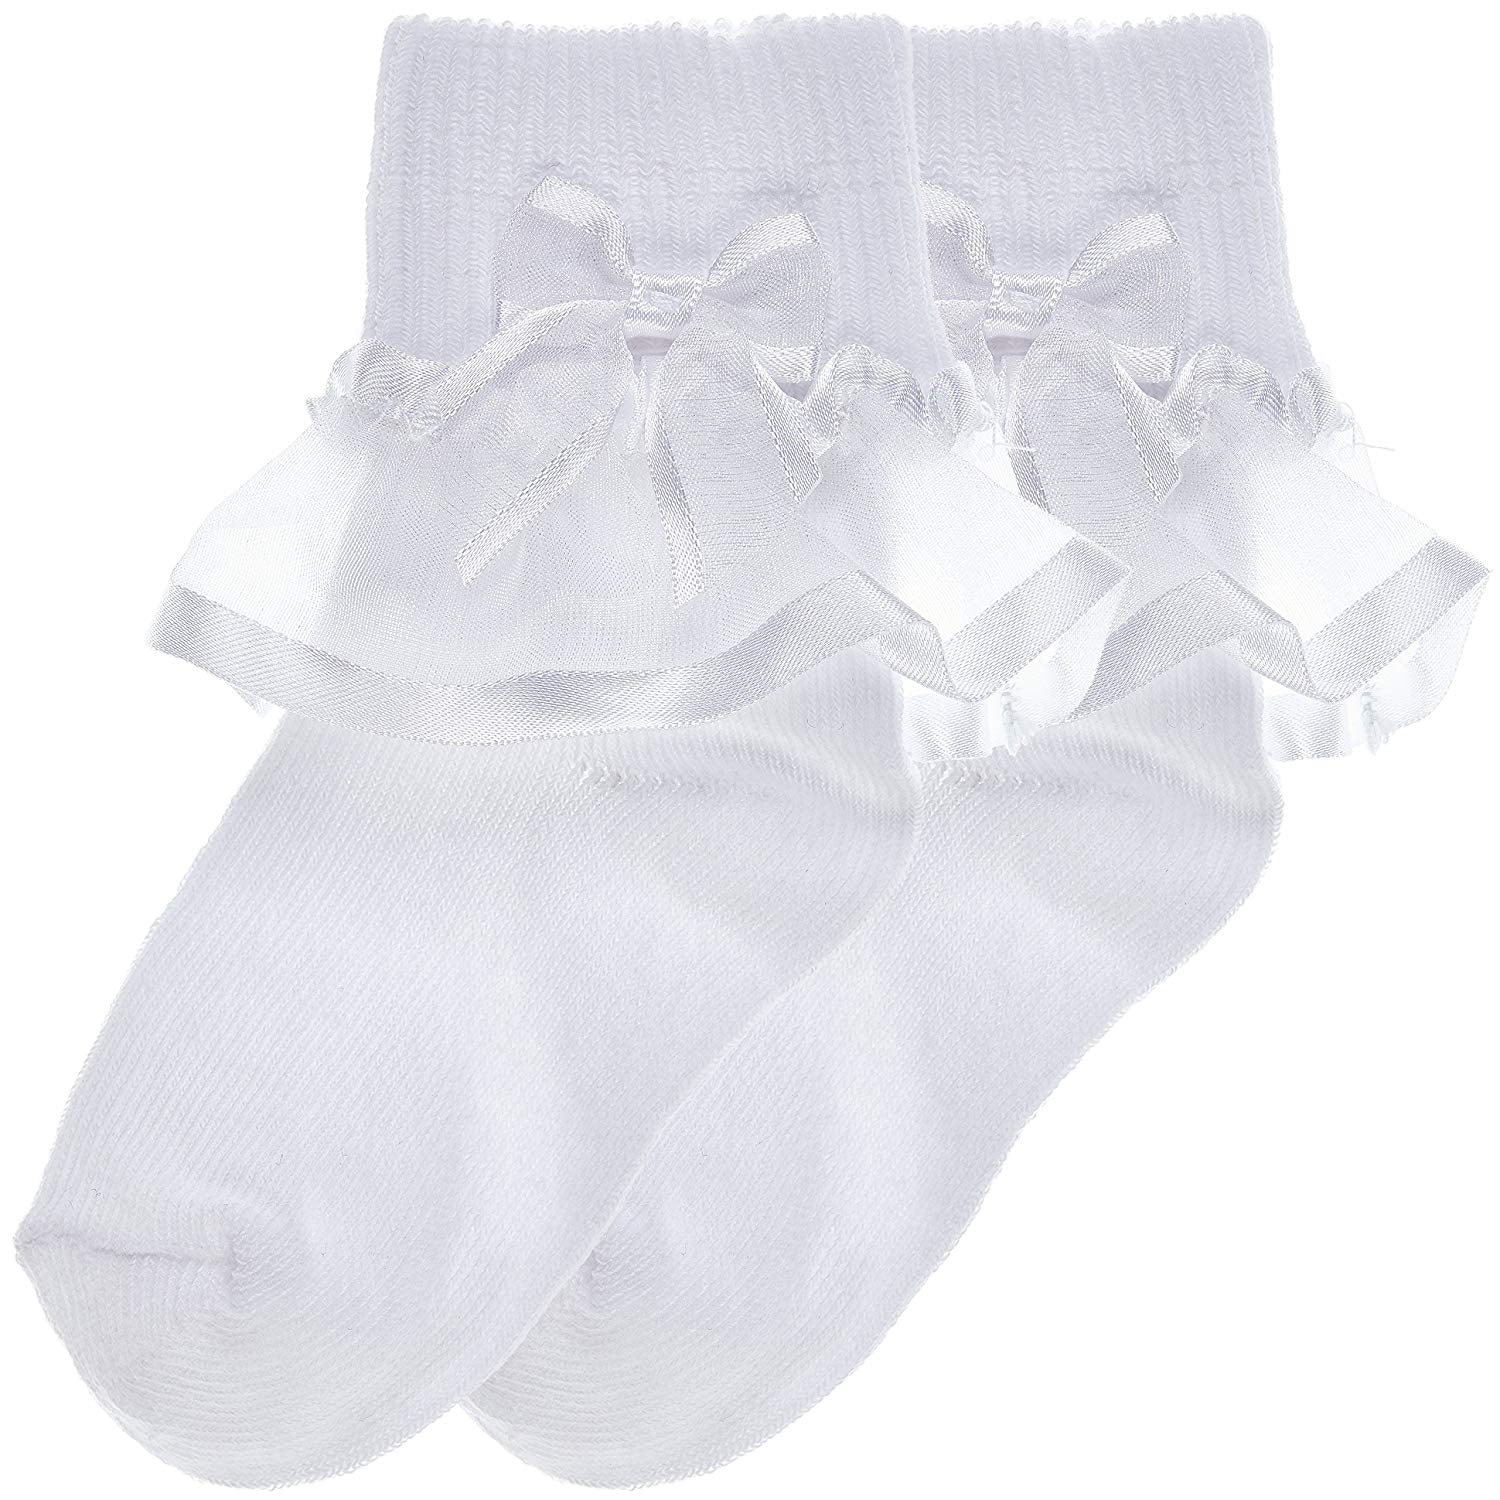 2-Pack Sheer Ribbon & Bow Turncuff Socks (White)